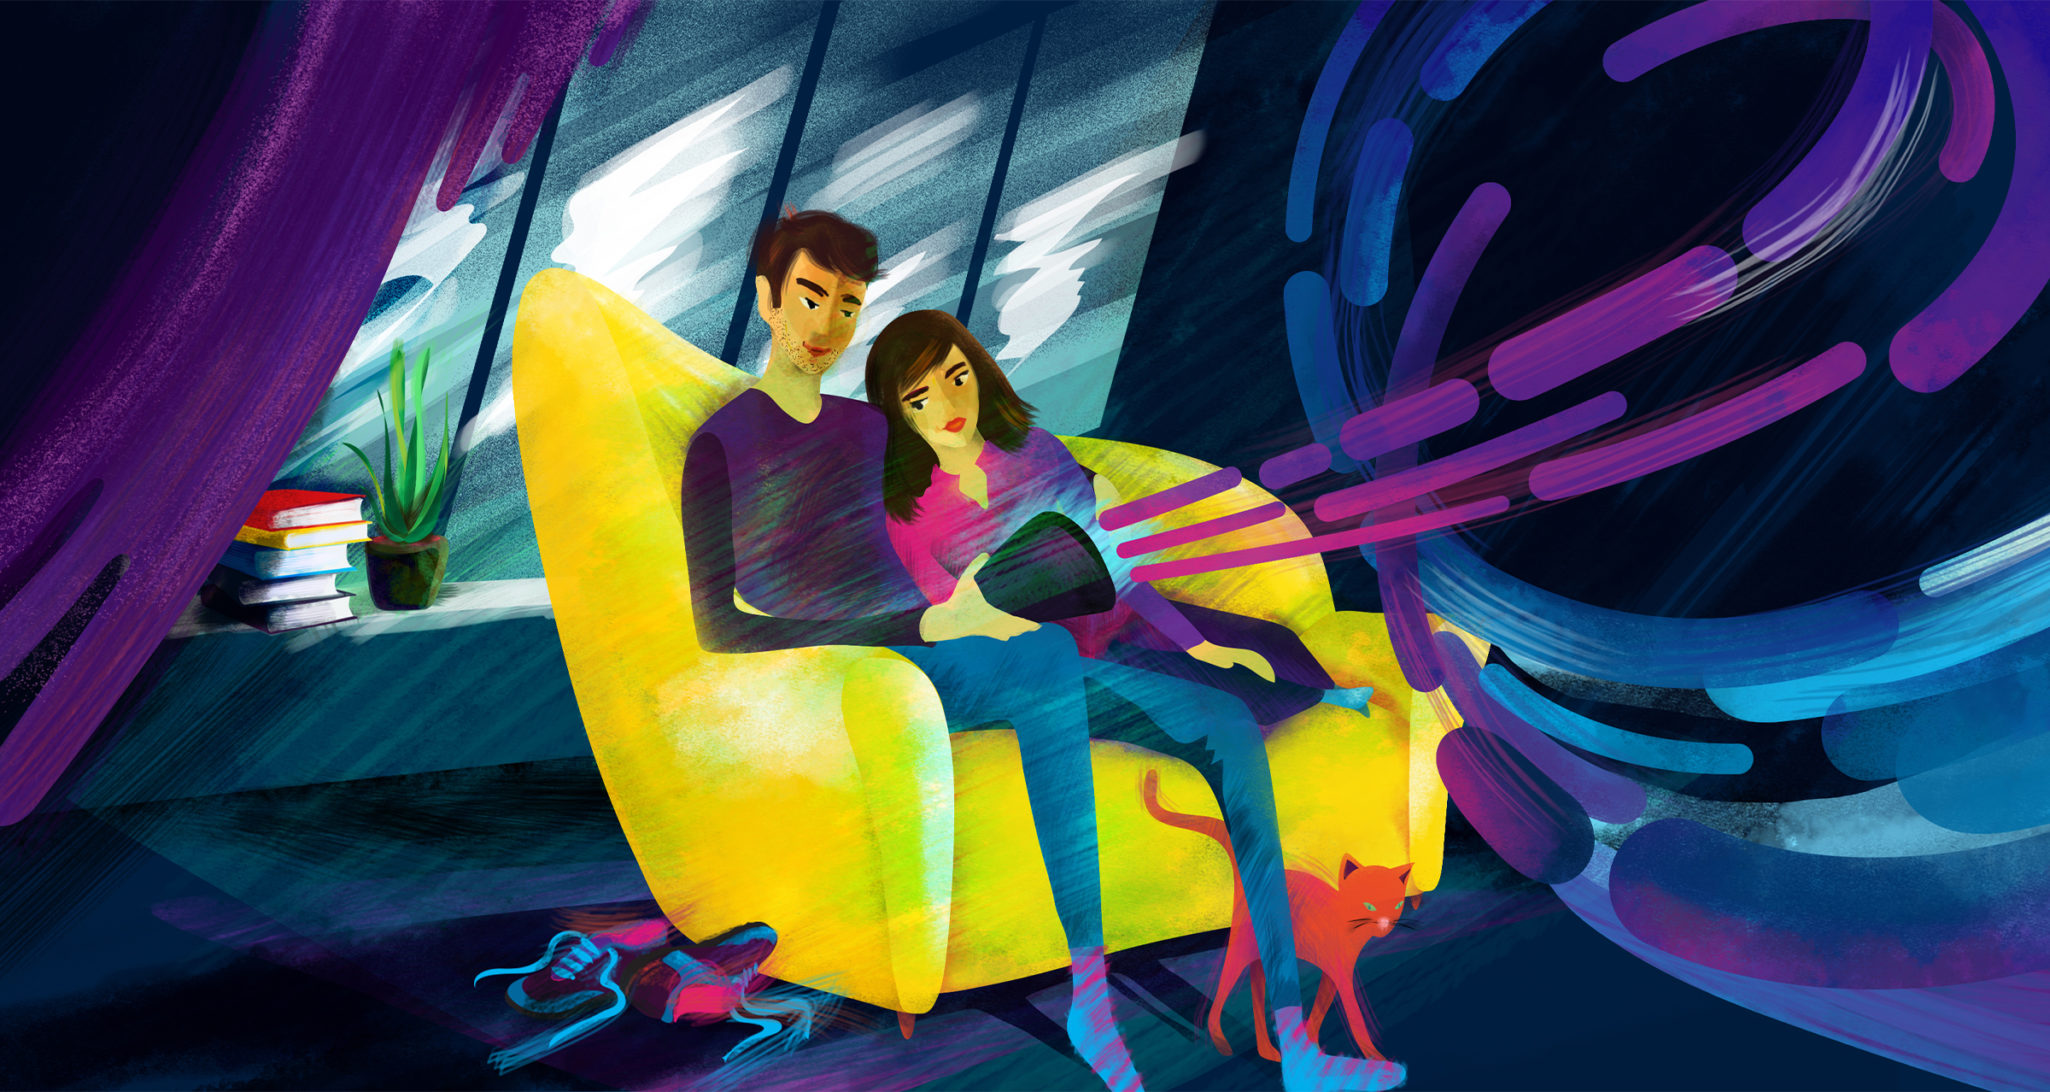 Styleframe detail for animated TV commercial: Couple on the sofa